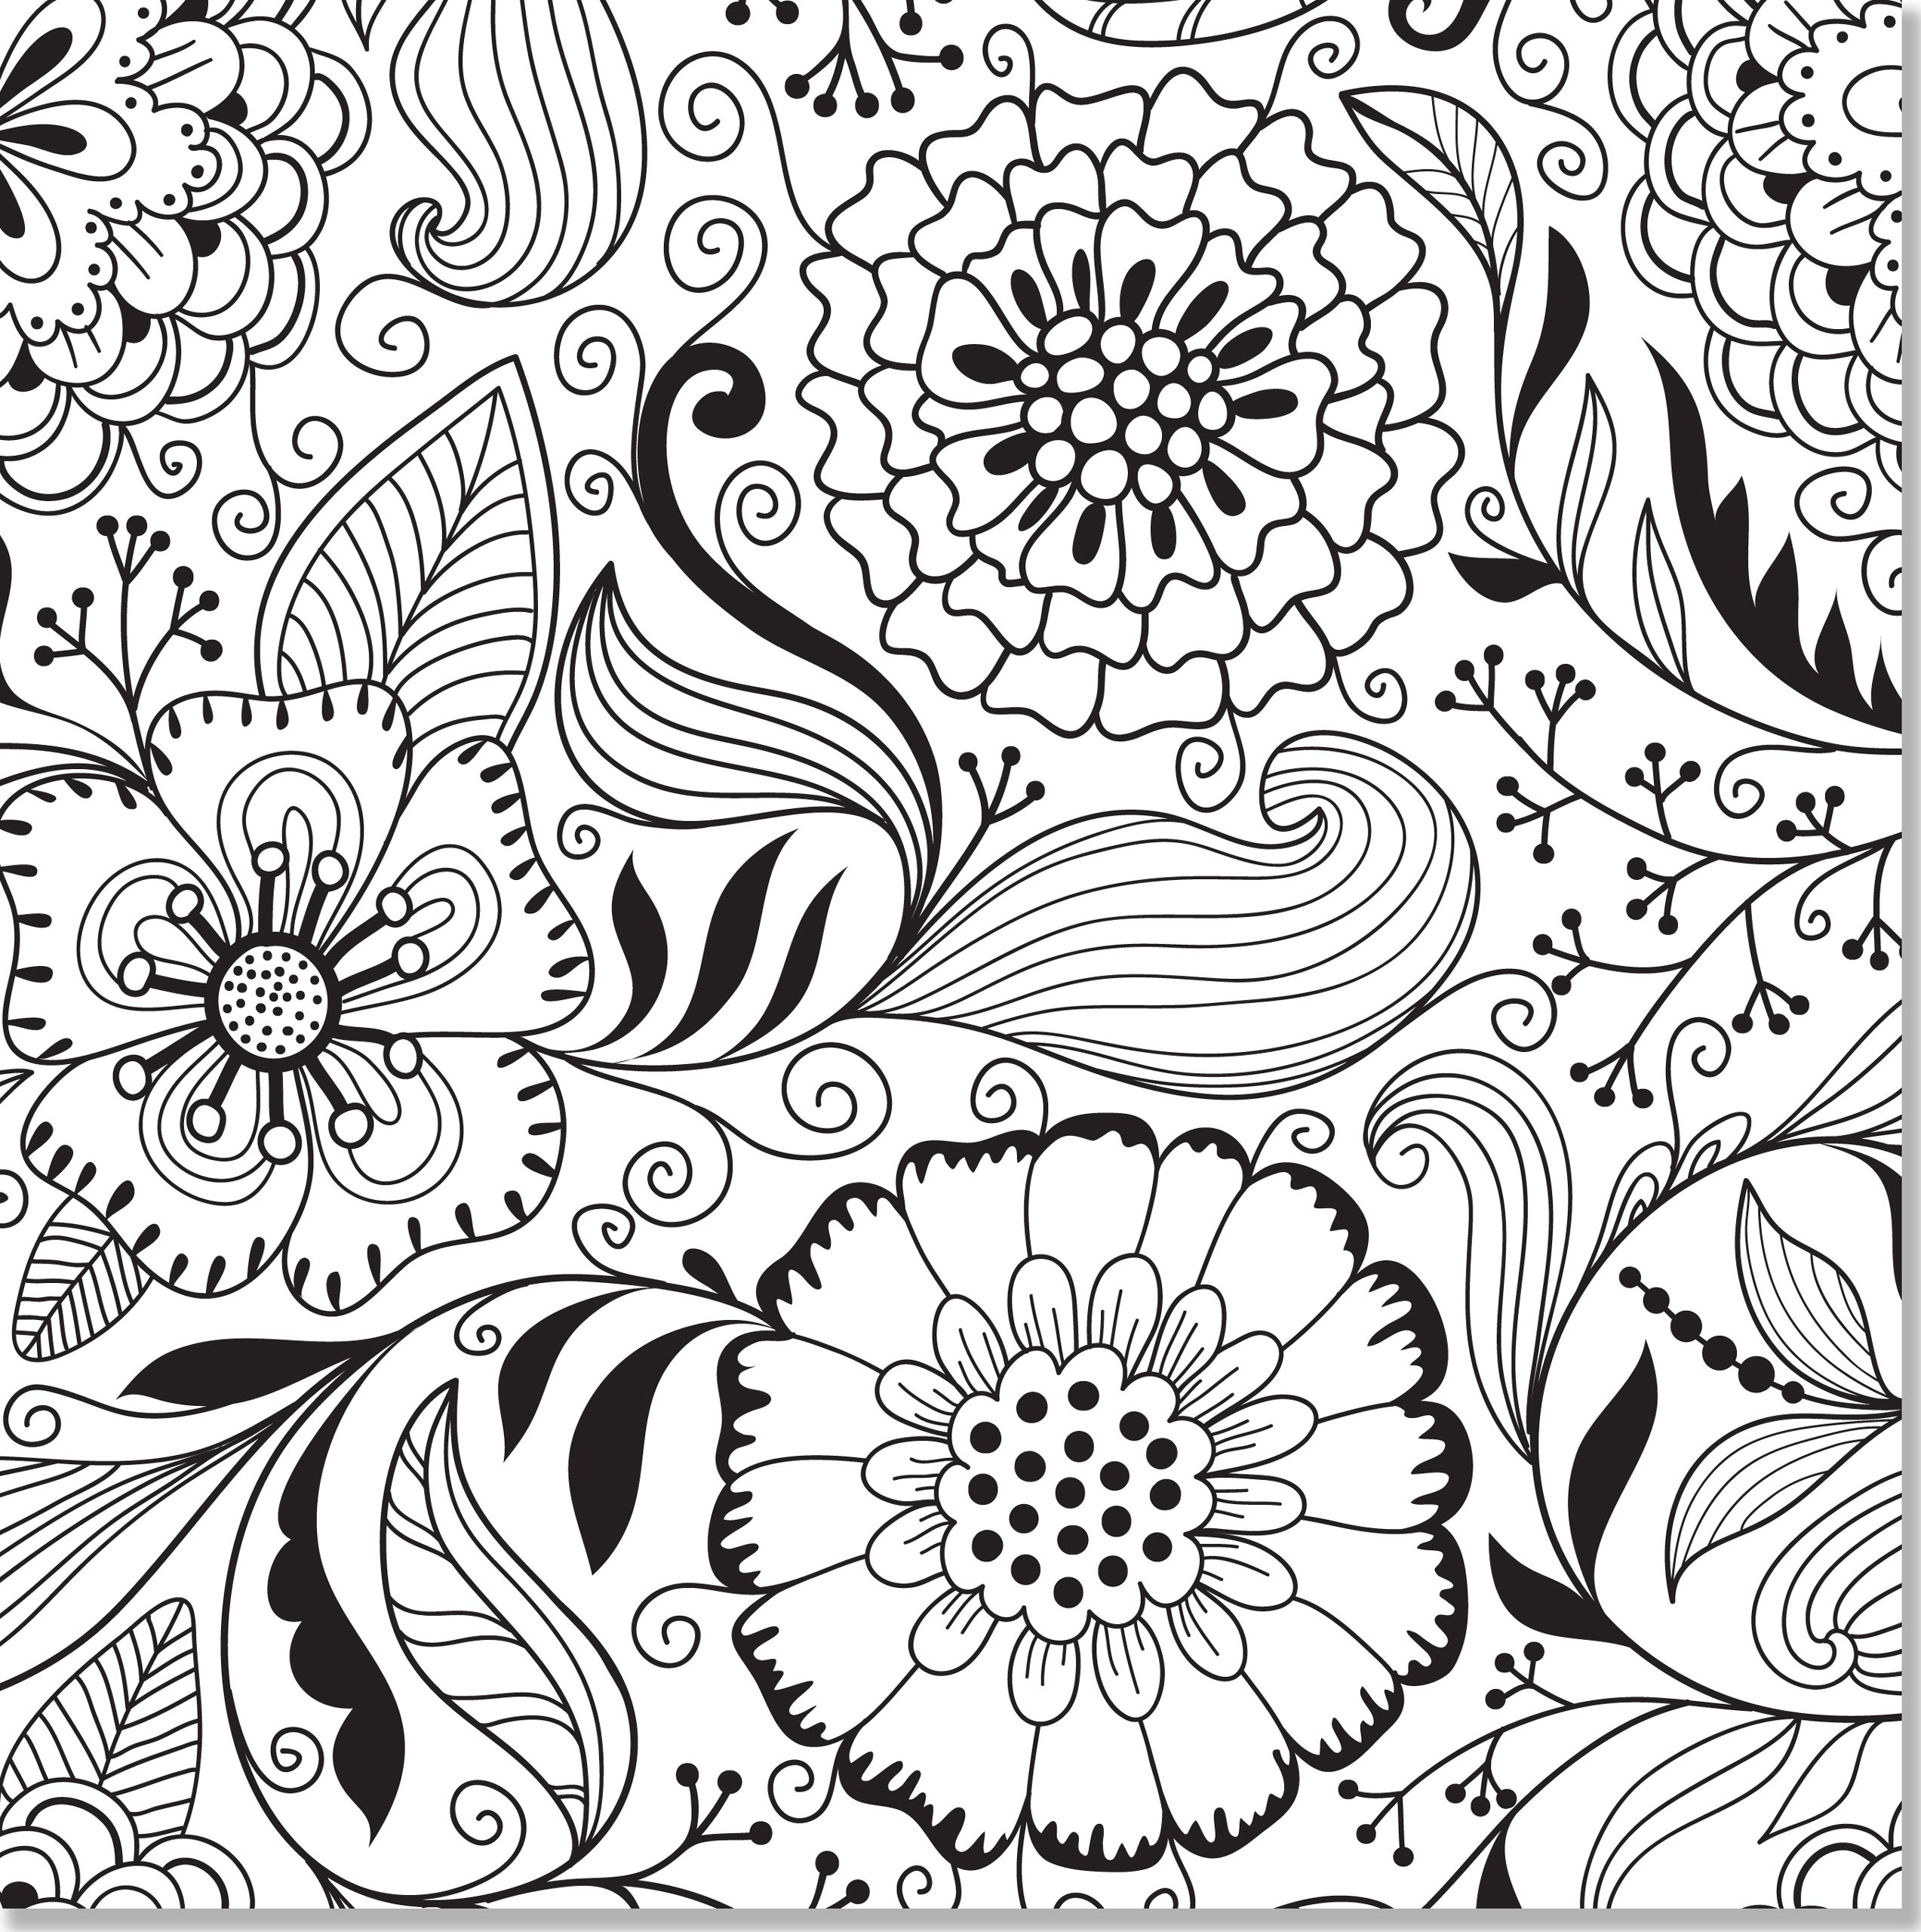 Coloring Pages : Free Printable Coloring Pages For Adults Advanced - Free Printable Coloring Pages For Adults